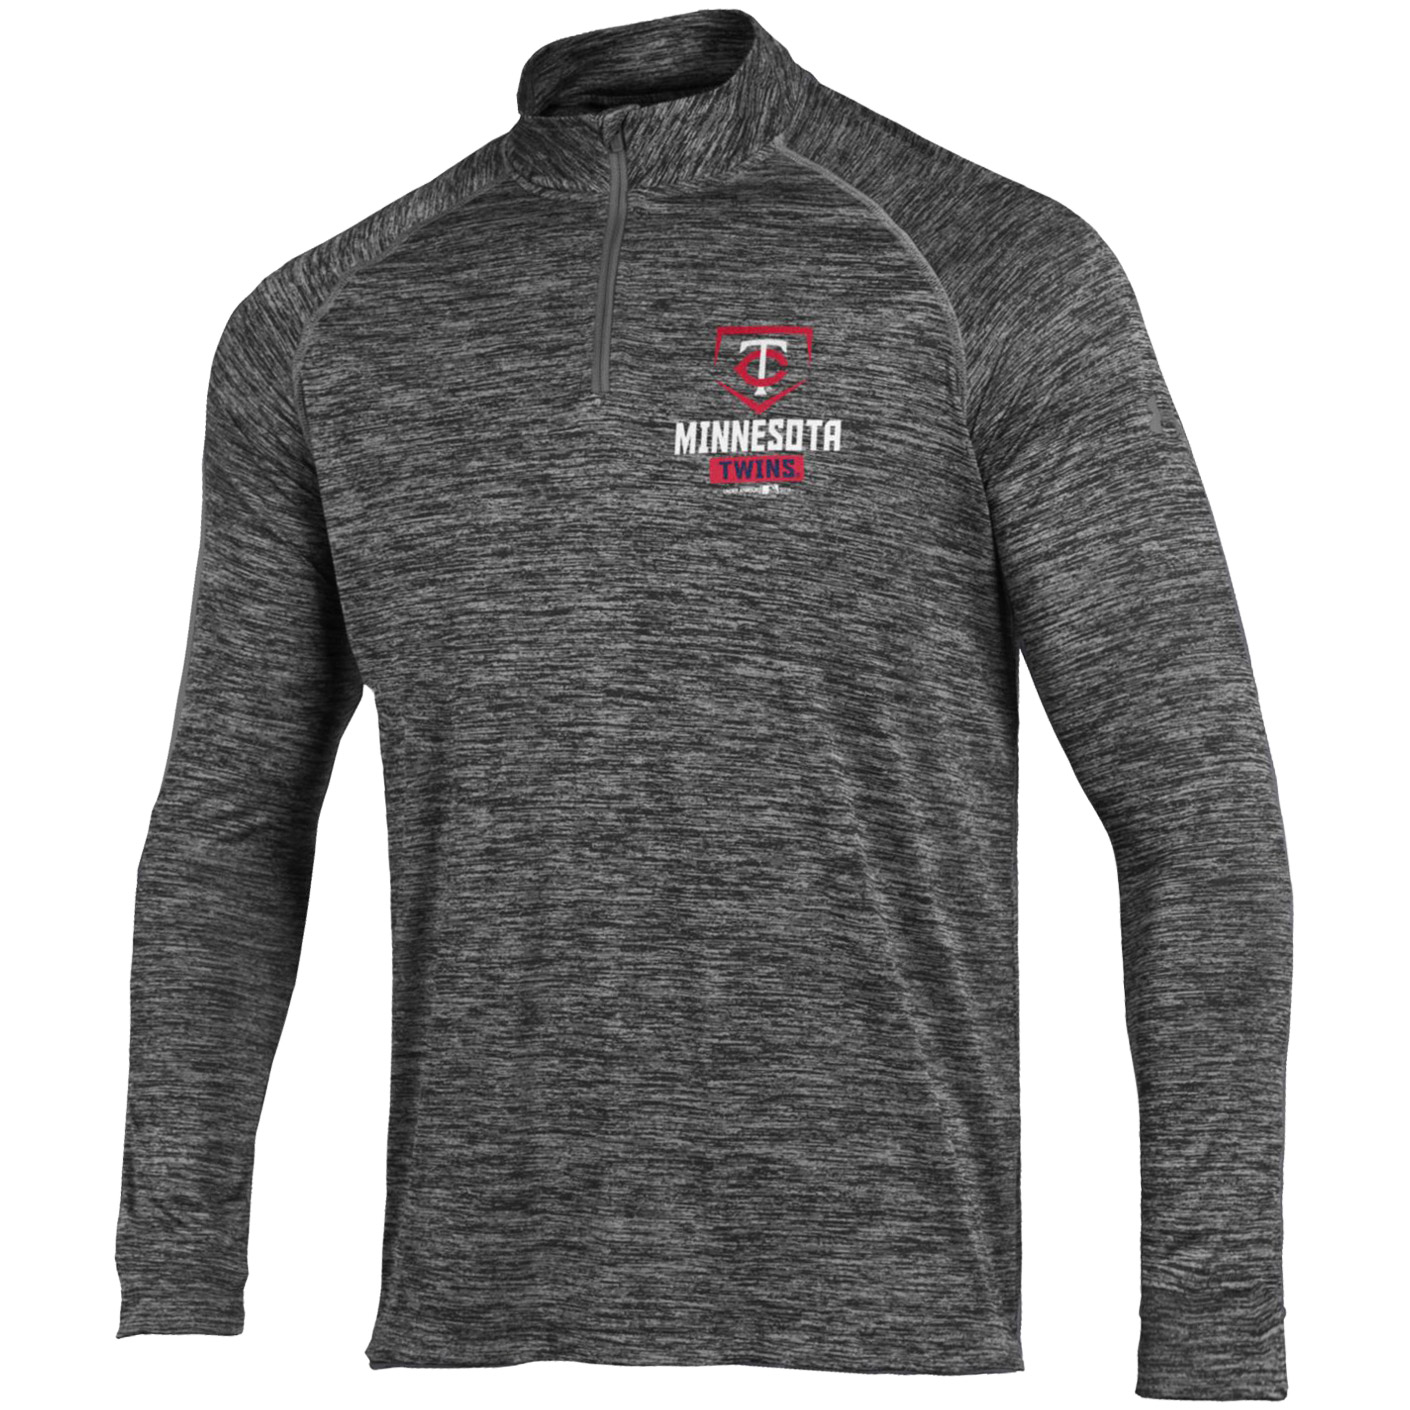 Minnesota Twins Under Armour Tech Quarter-Zip Performance Pullover - Charcoal